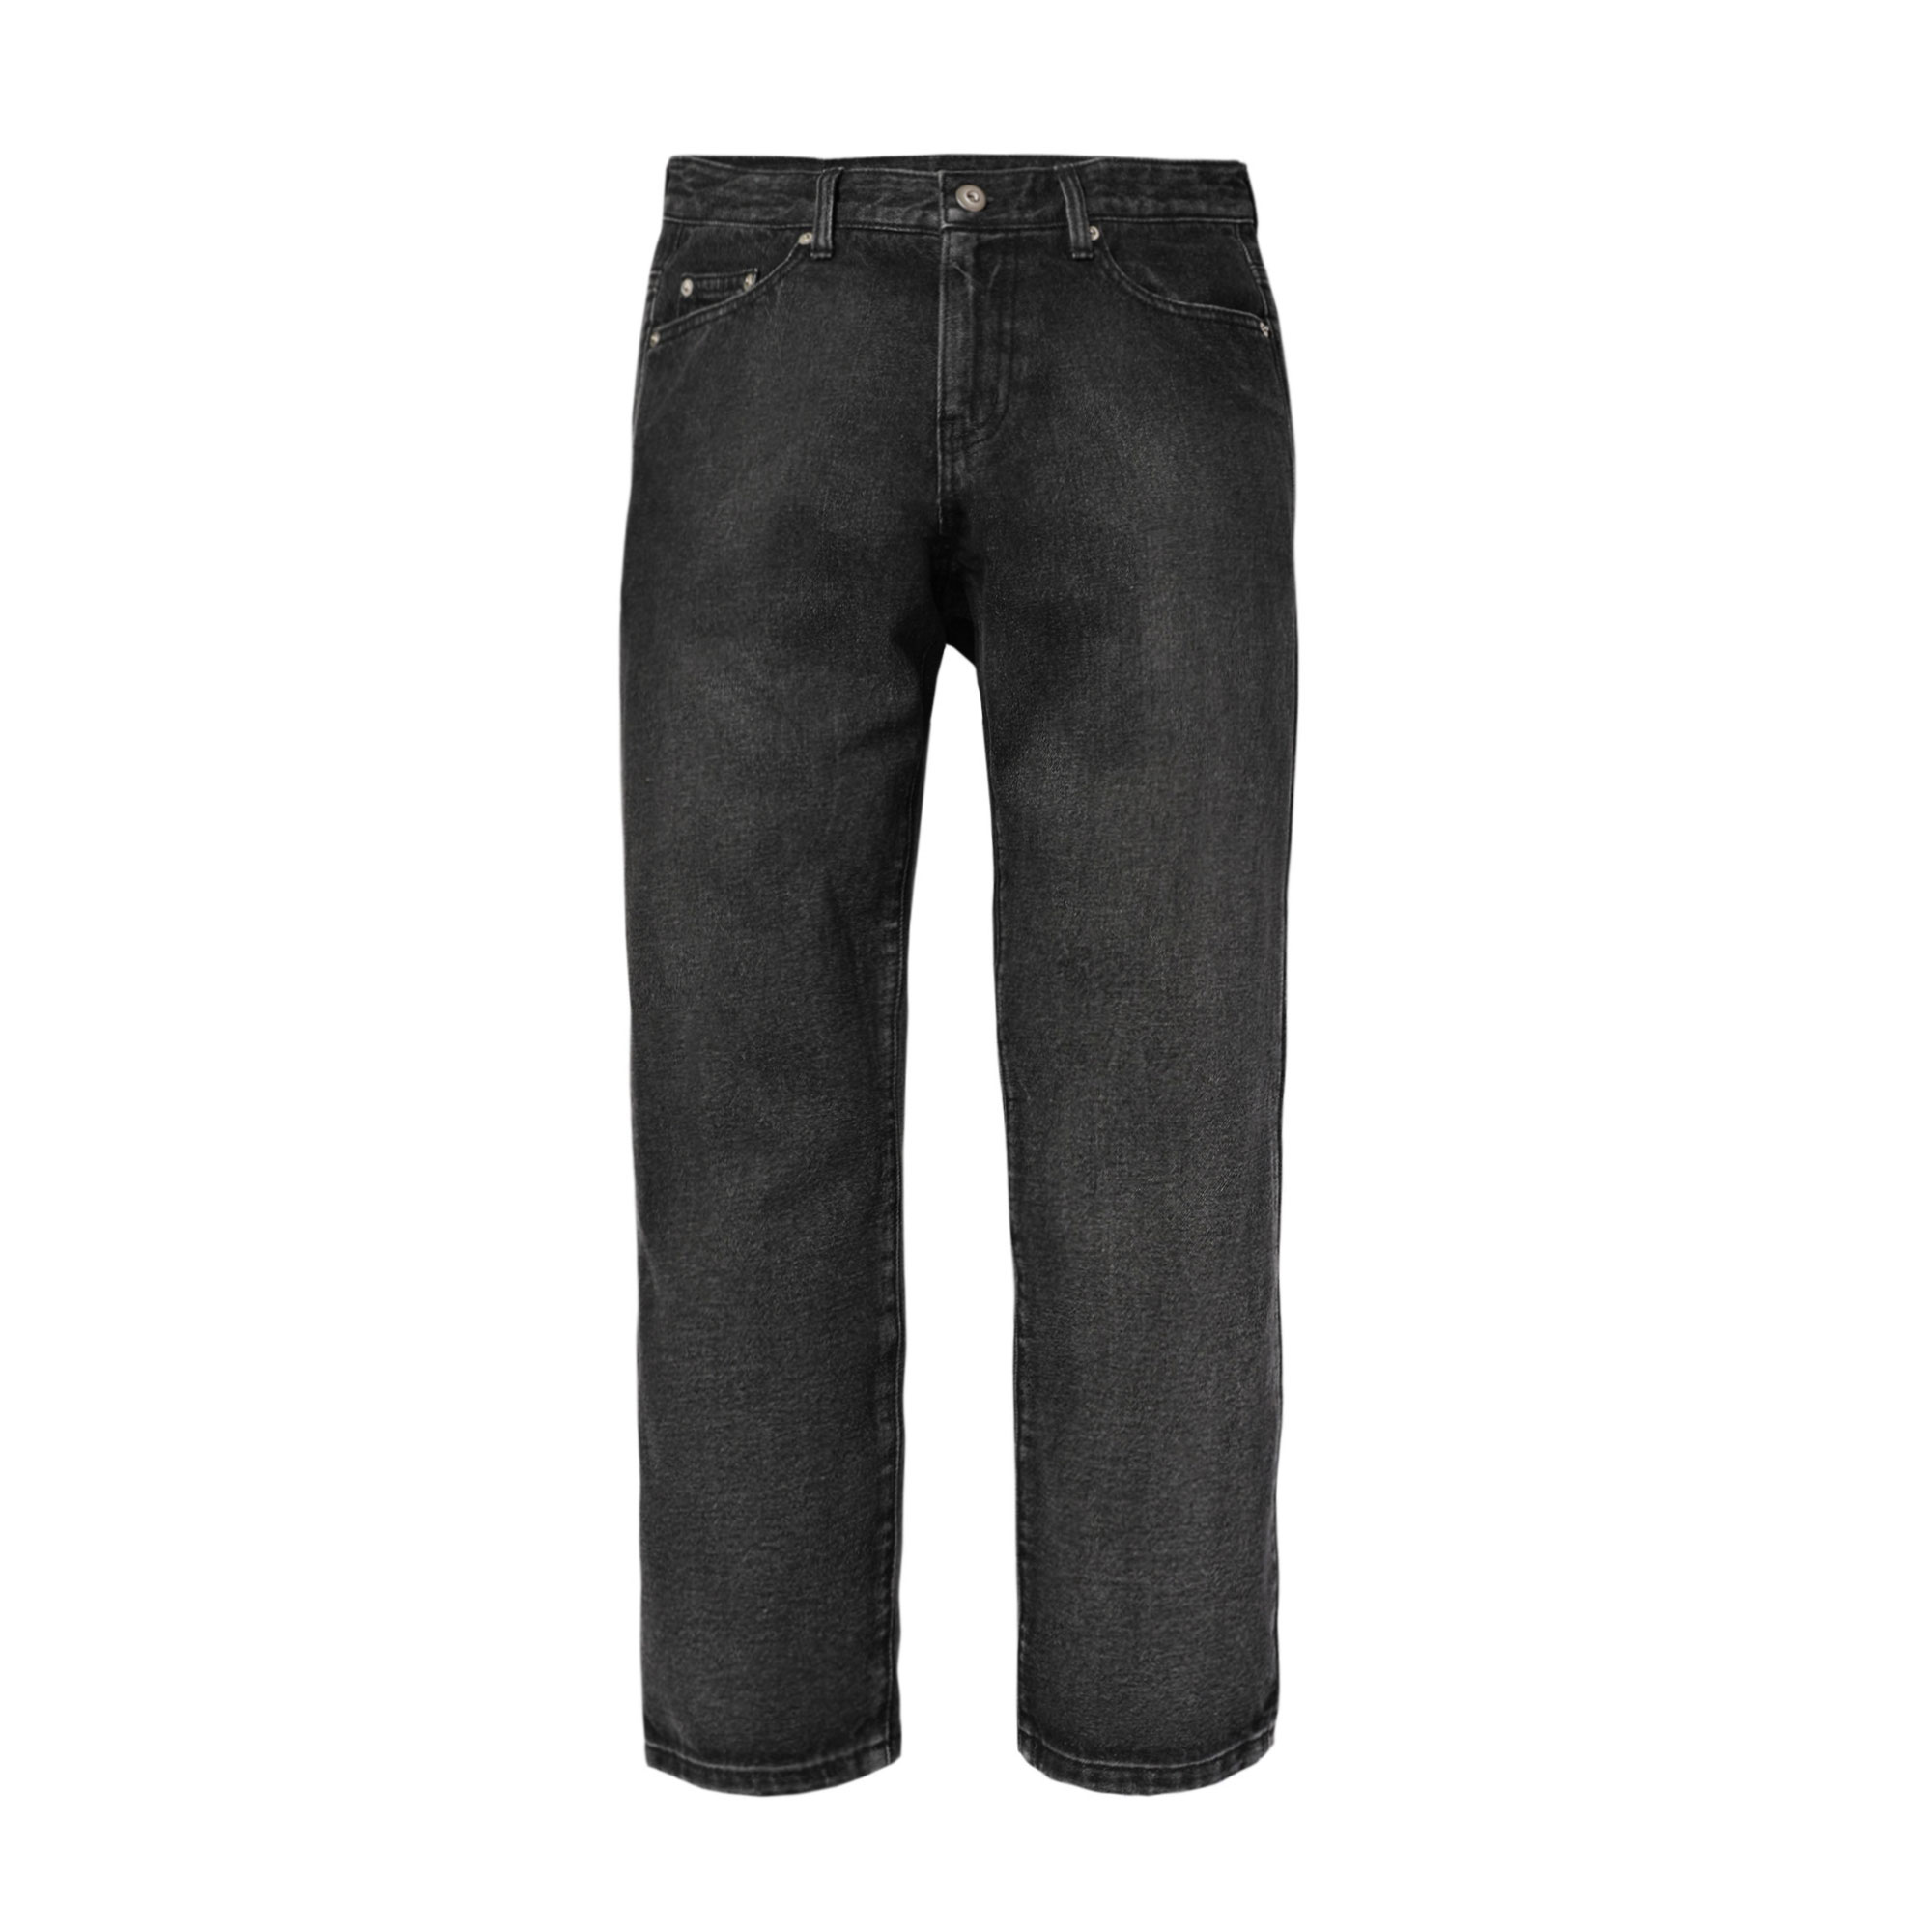 heritage semi-wide jeans / black